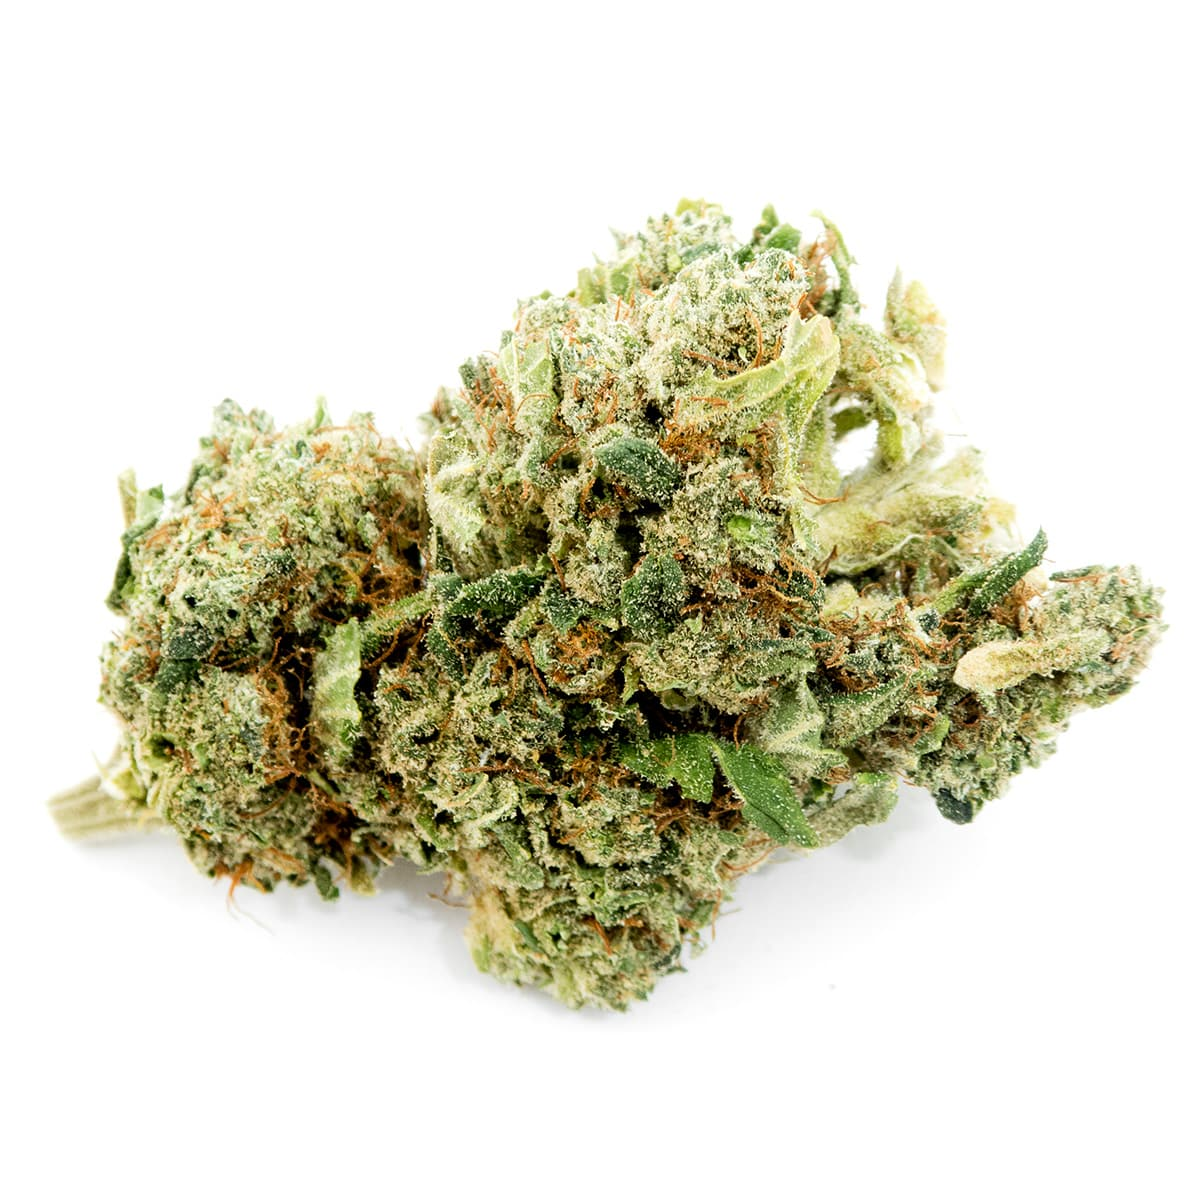 Swiss CBD Wholesale, cannabis light, premium legal weed delivery